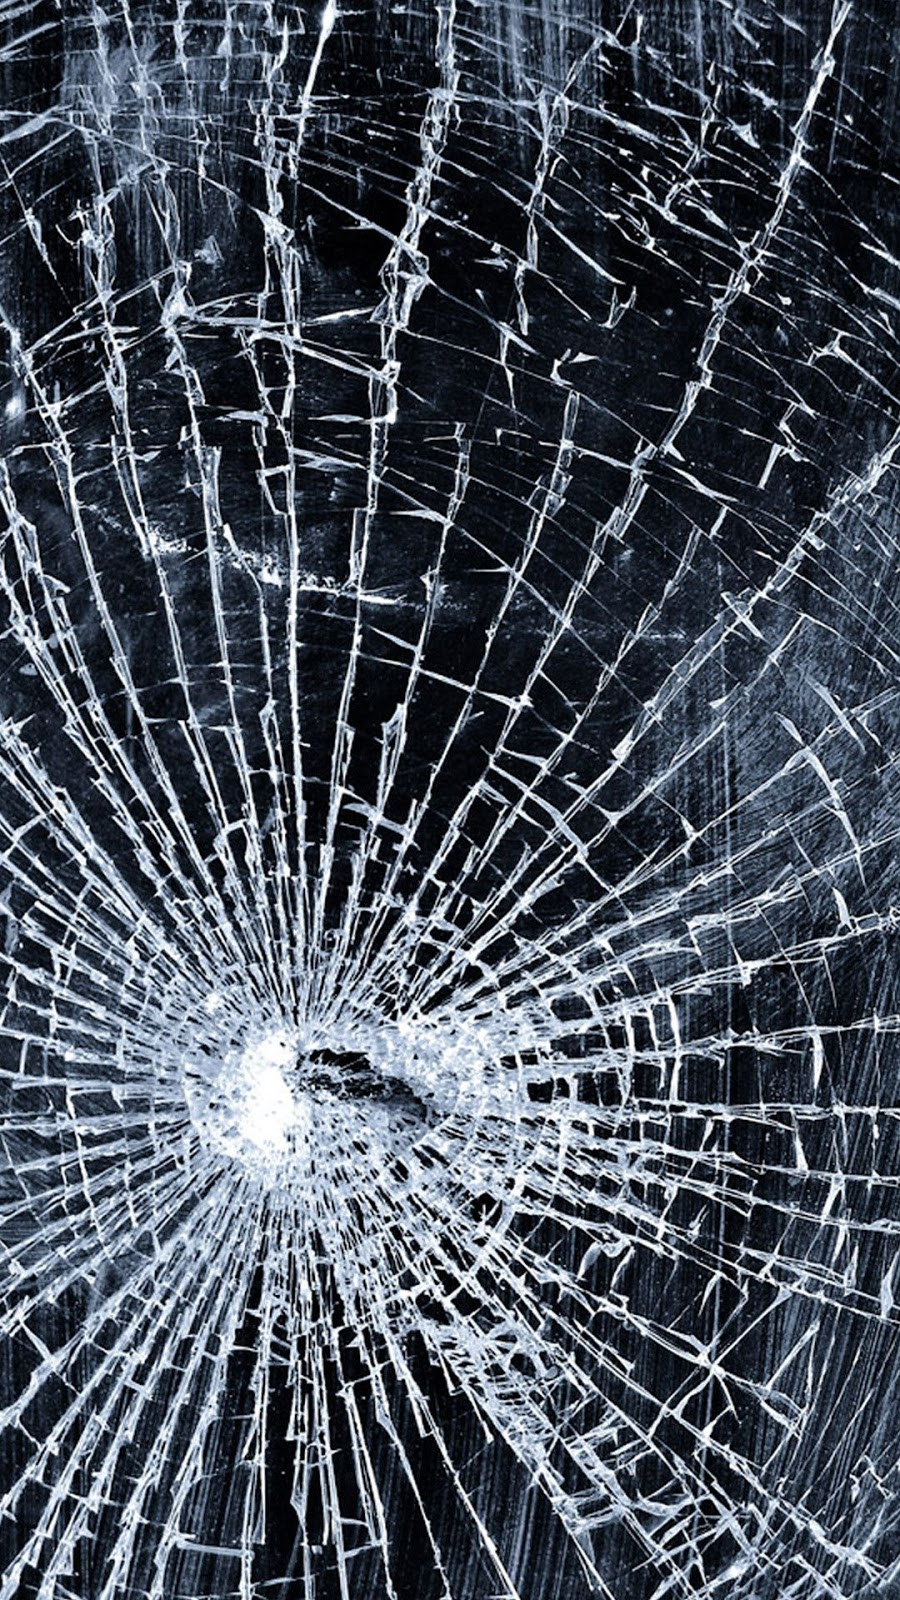 Broken Screen Wallpaper Iphone Hd Download In 2020 Broken Screen Wallpaper Broken Glass Wallpaper Cracked Wallpaper